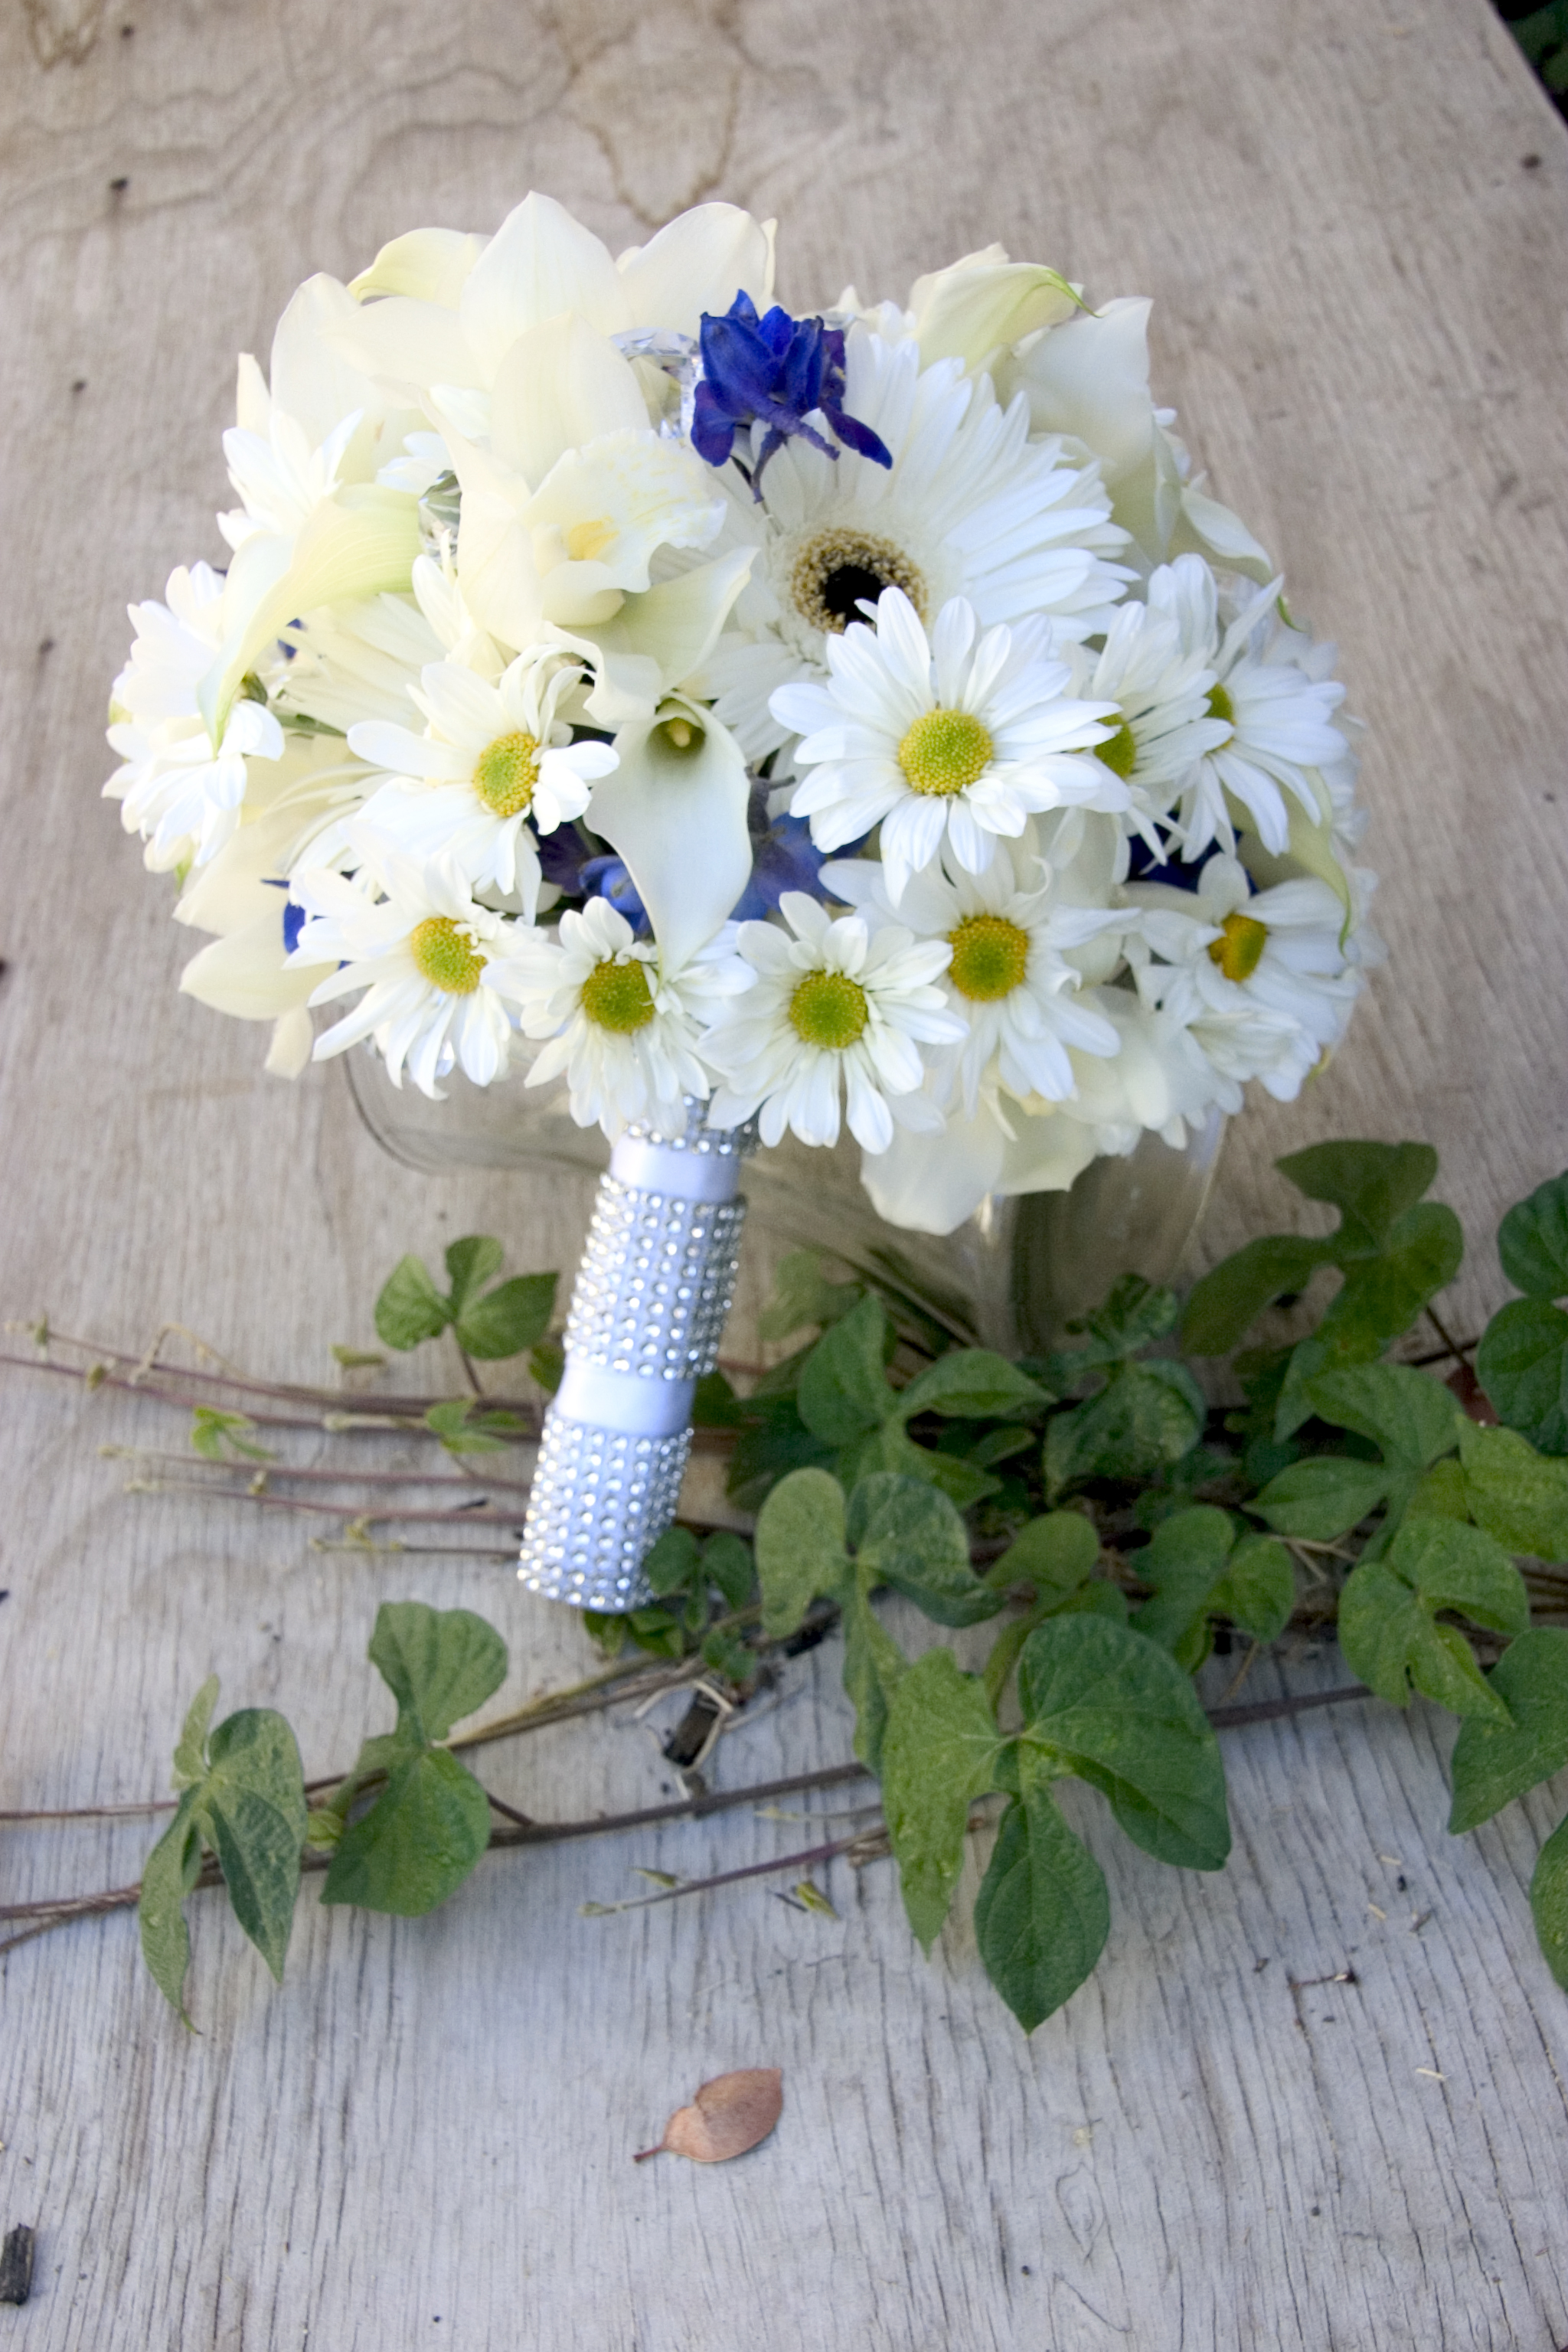 Wedding Flowers With Daisies : Moved permanently